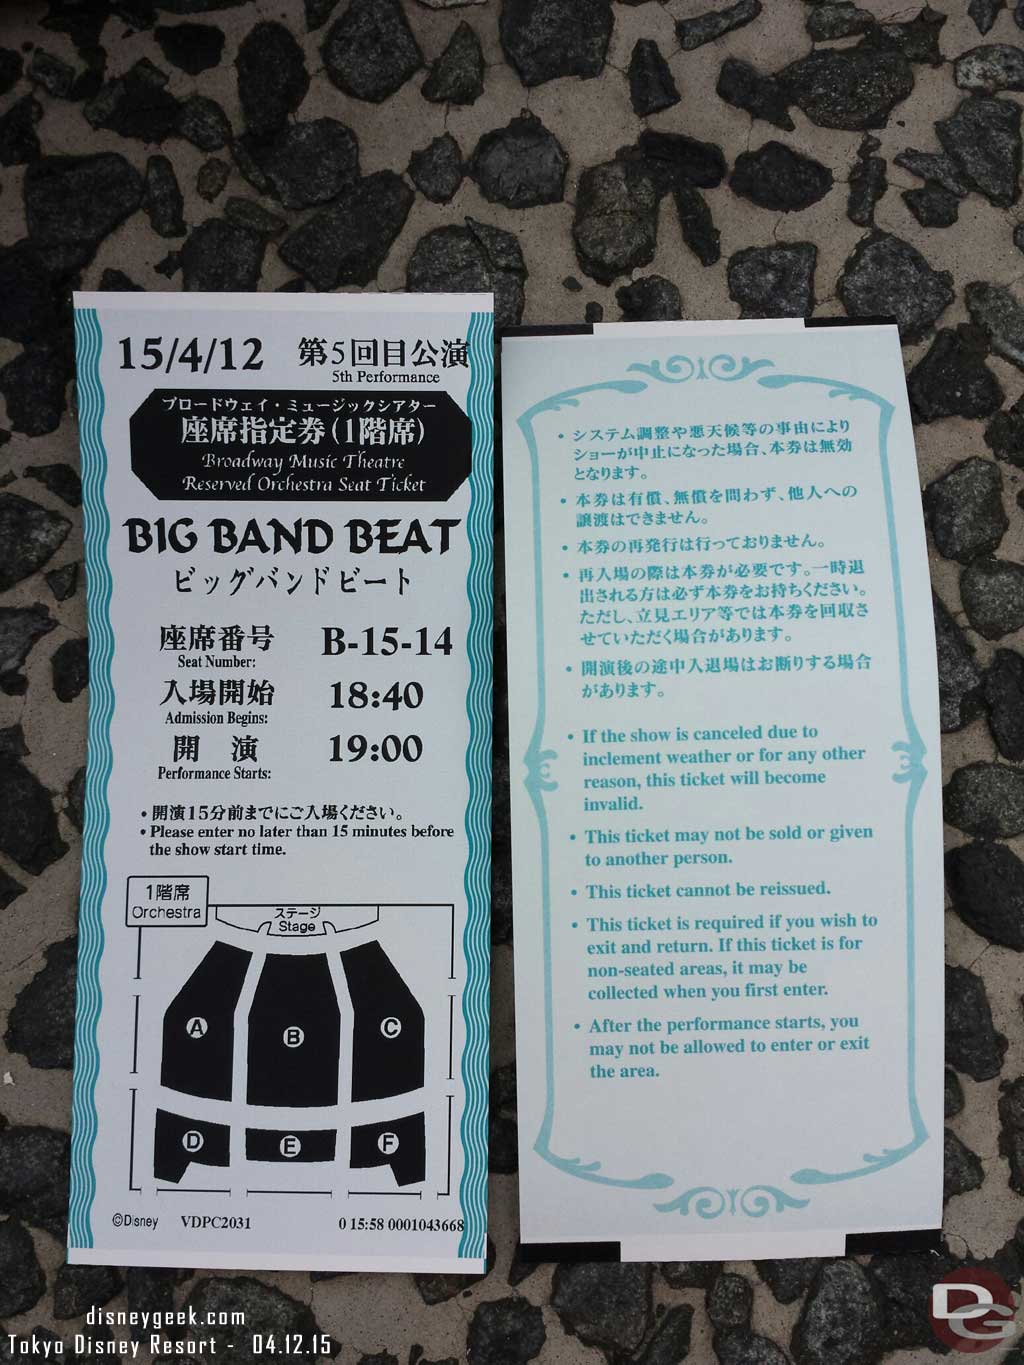 Won Big Band Beat tickets on my 1st try #TokyoDisneySea #tdr